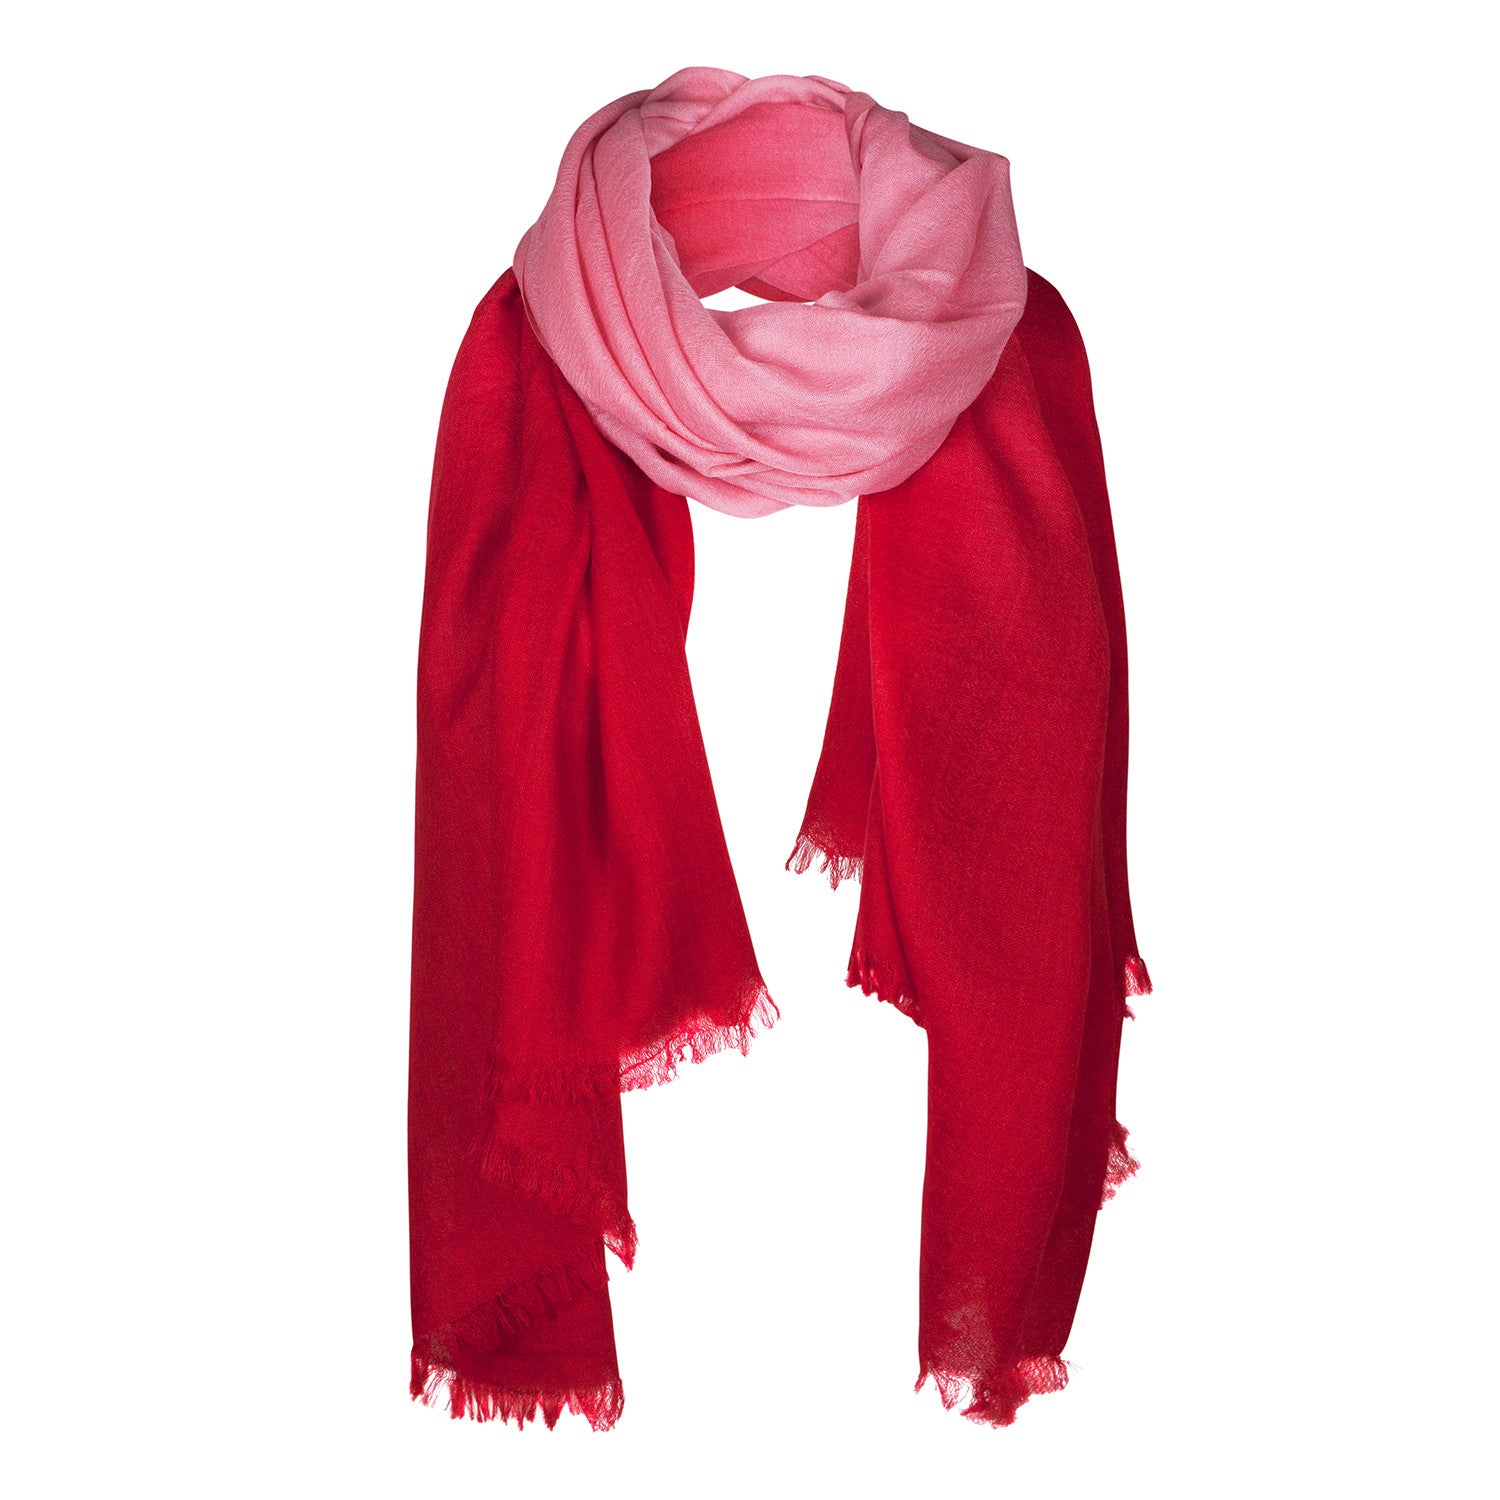 Red Pink Shaded Light Cashmere Stole | buy now at The Cashmere Choice London